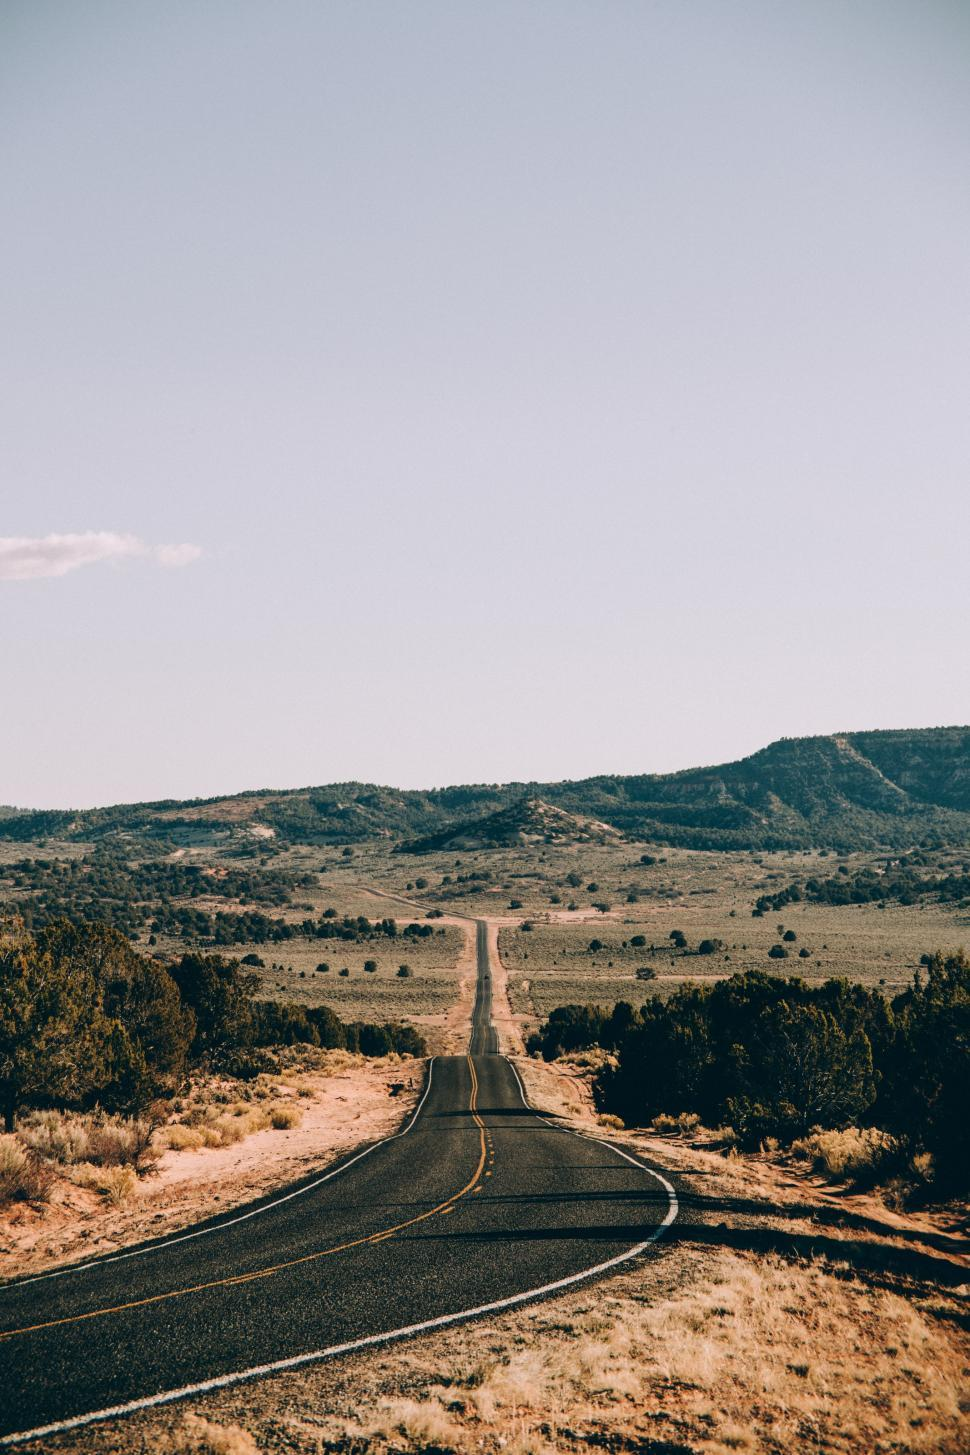 Download Free Stock HD Photo of Long highway in Arizona desert Online